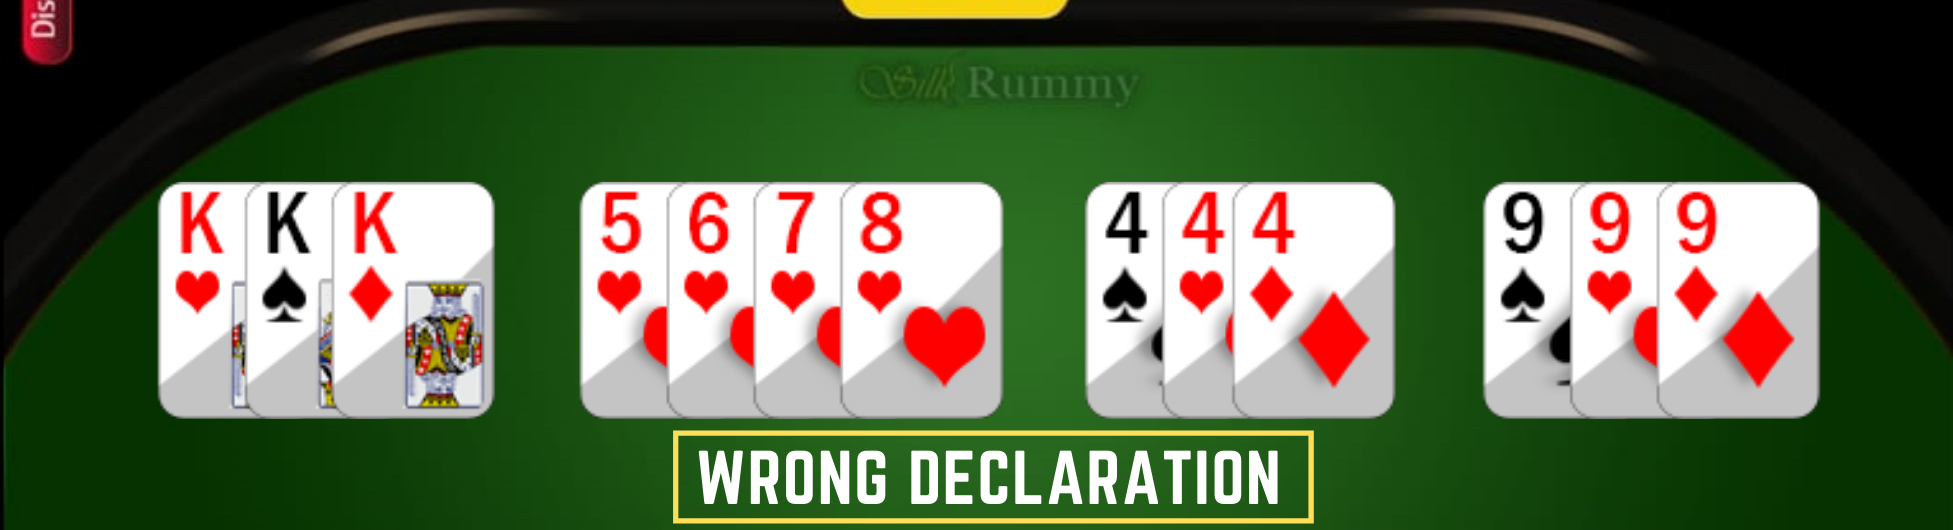 How to Play Rummy- Learn Rummy Rules- Rummy Game Wrong declaration